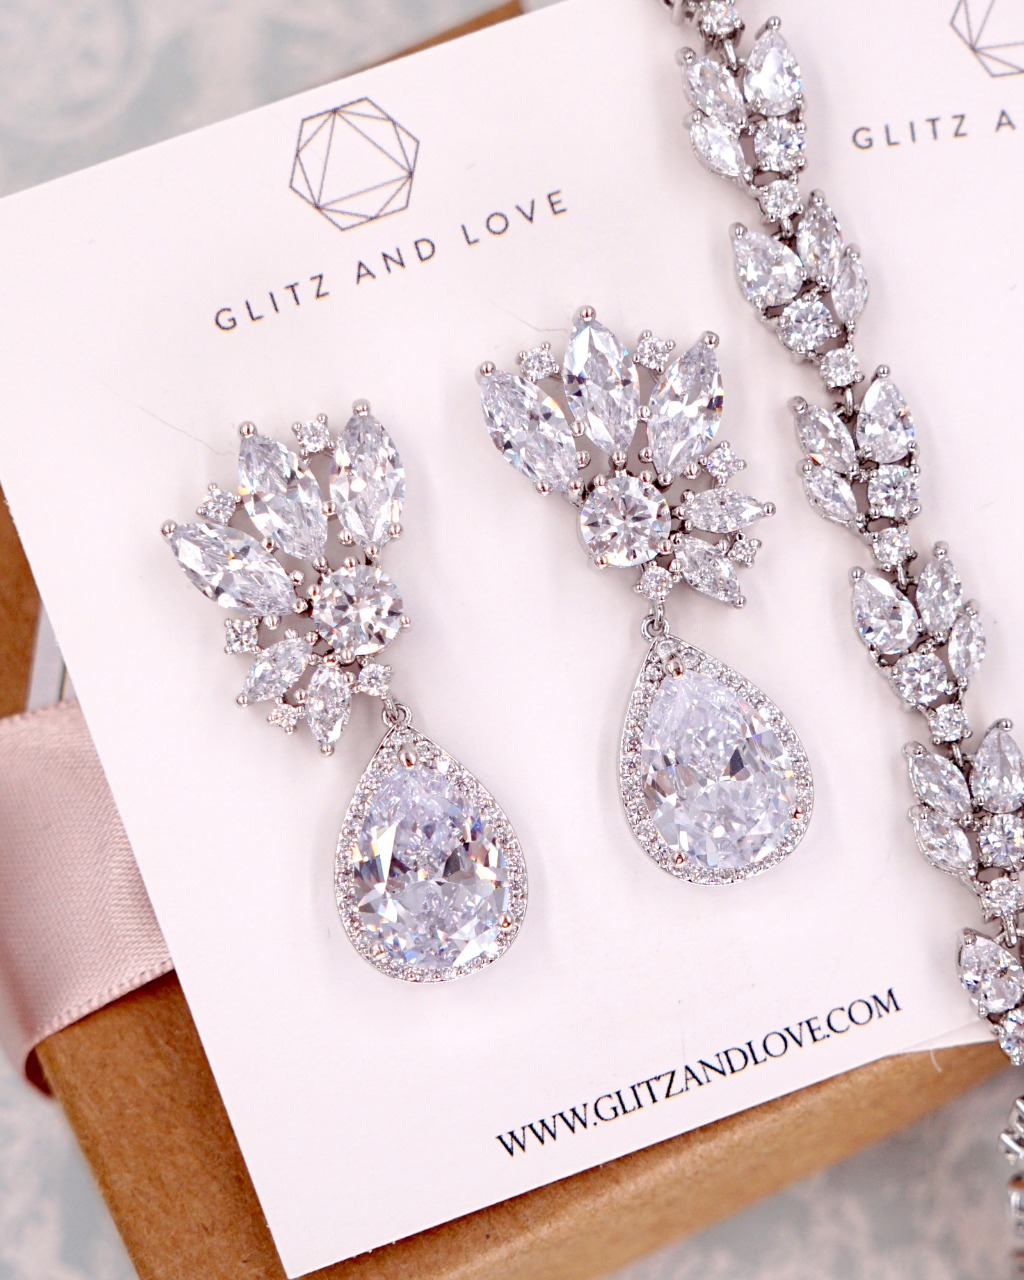 Silver CZ Clusters Teardrop earrings, bridal, brides, bridesmaids, fancy, elegant, wedding, jewelry set, www.glitzandlove.com